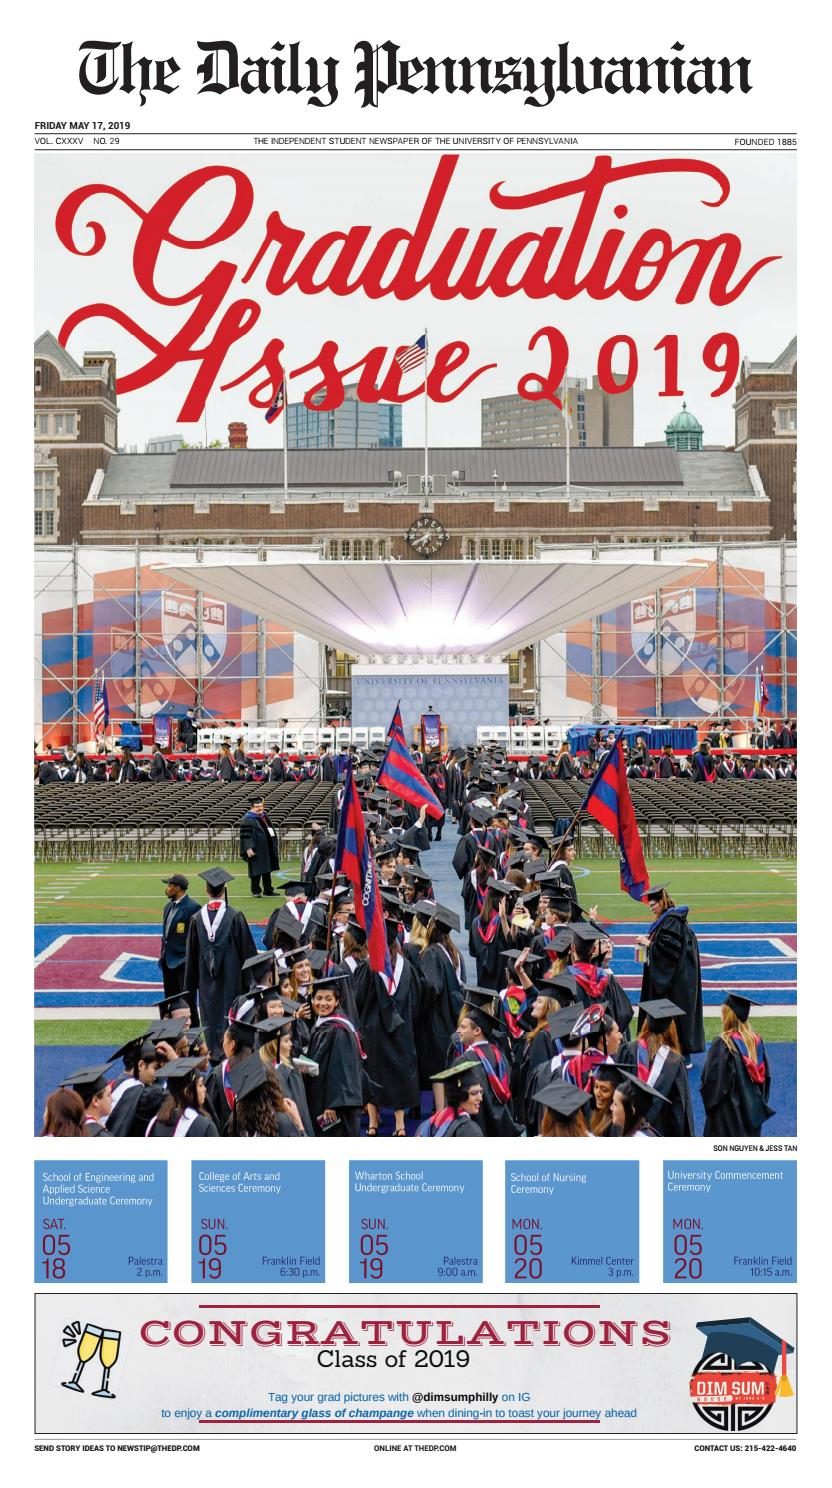 May 17, 2019 - Graduation Issue by The Daily Pennsylvanian - issuu